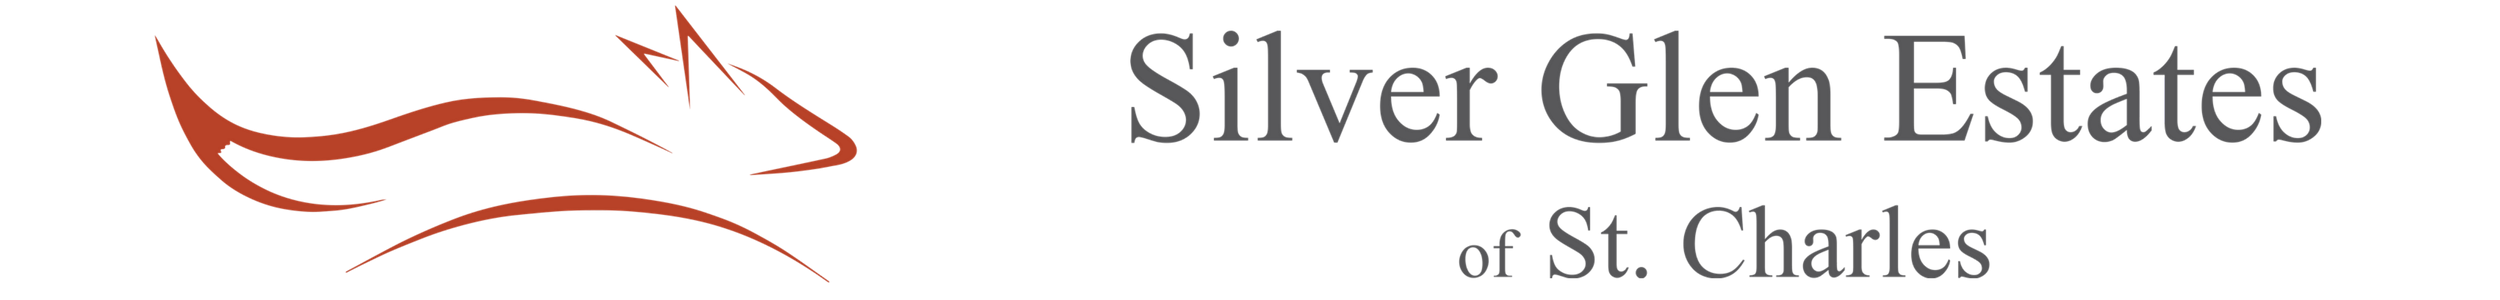 Silver Glen Estates